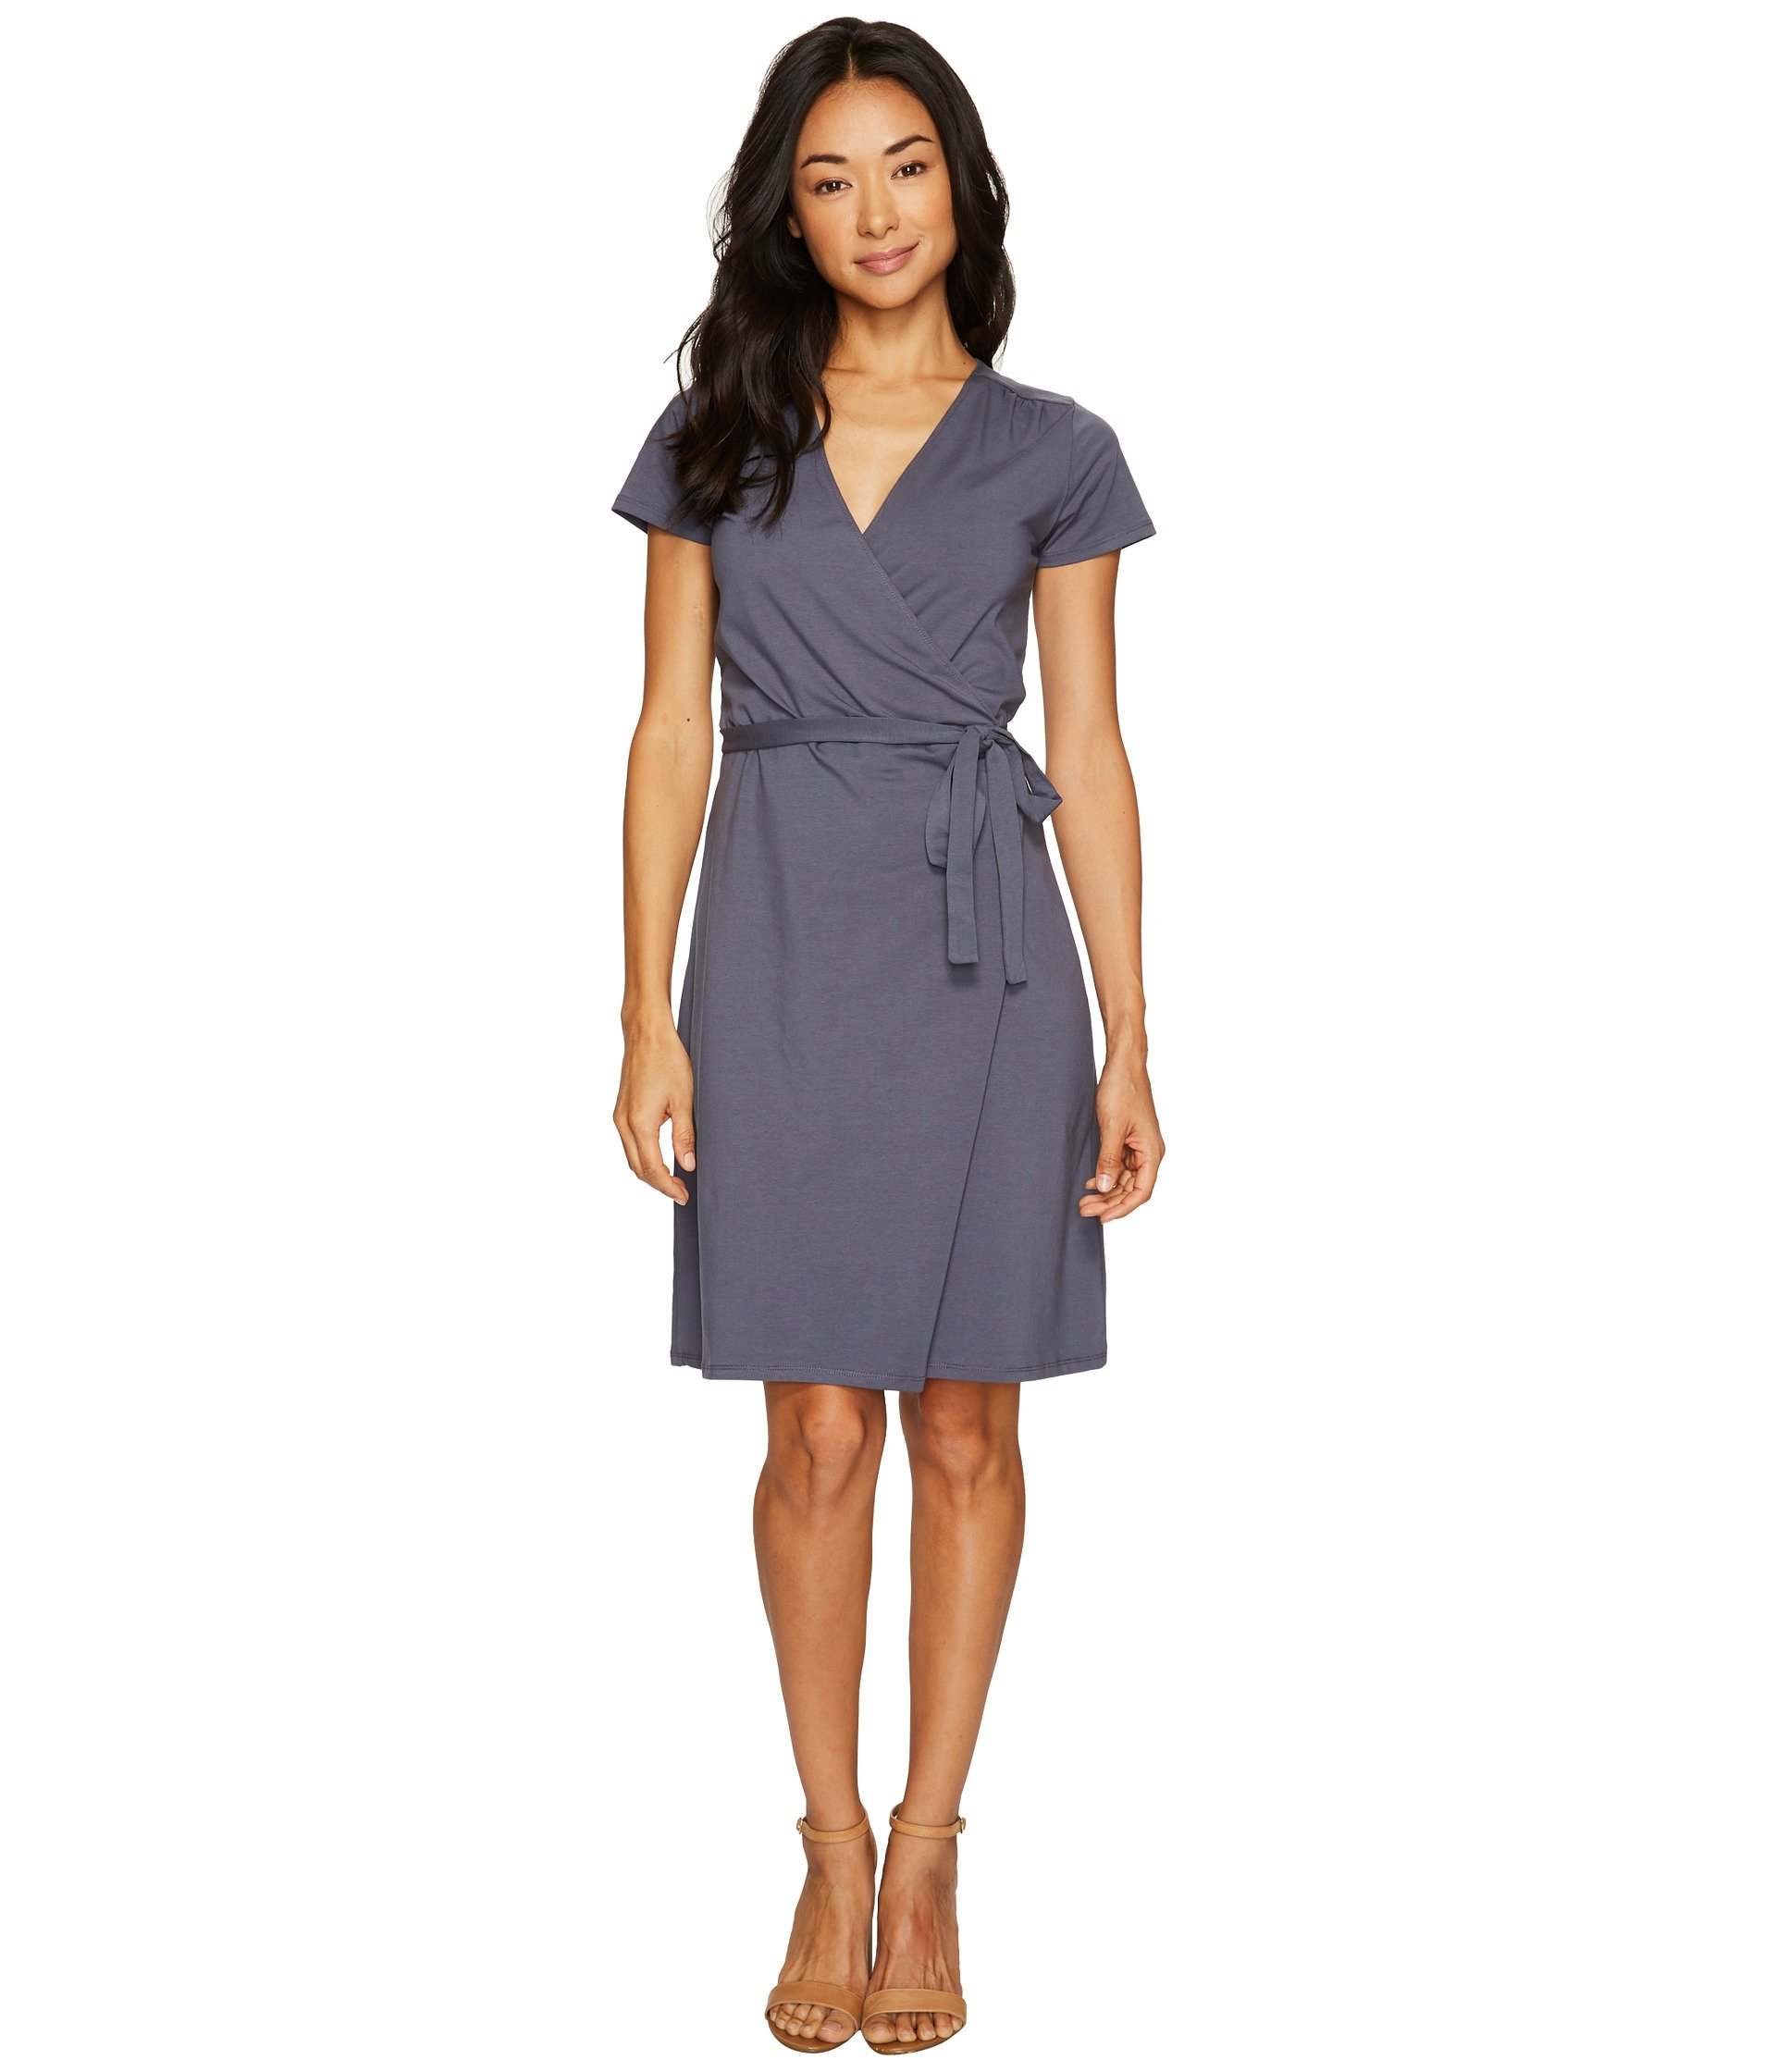 Pact Wrap Dress At Zappos Com